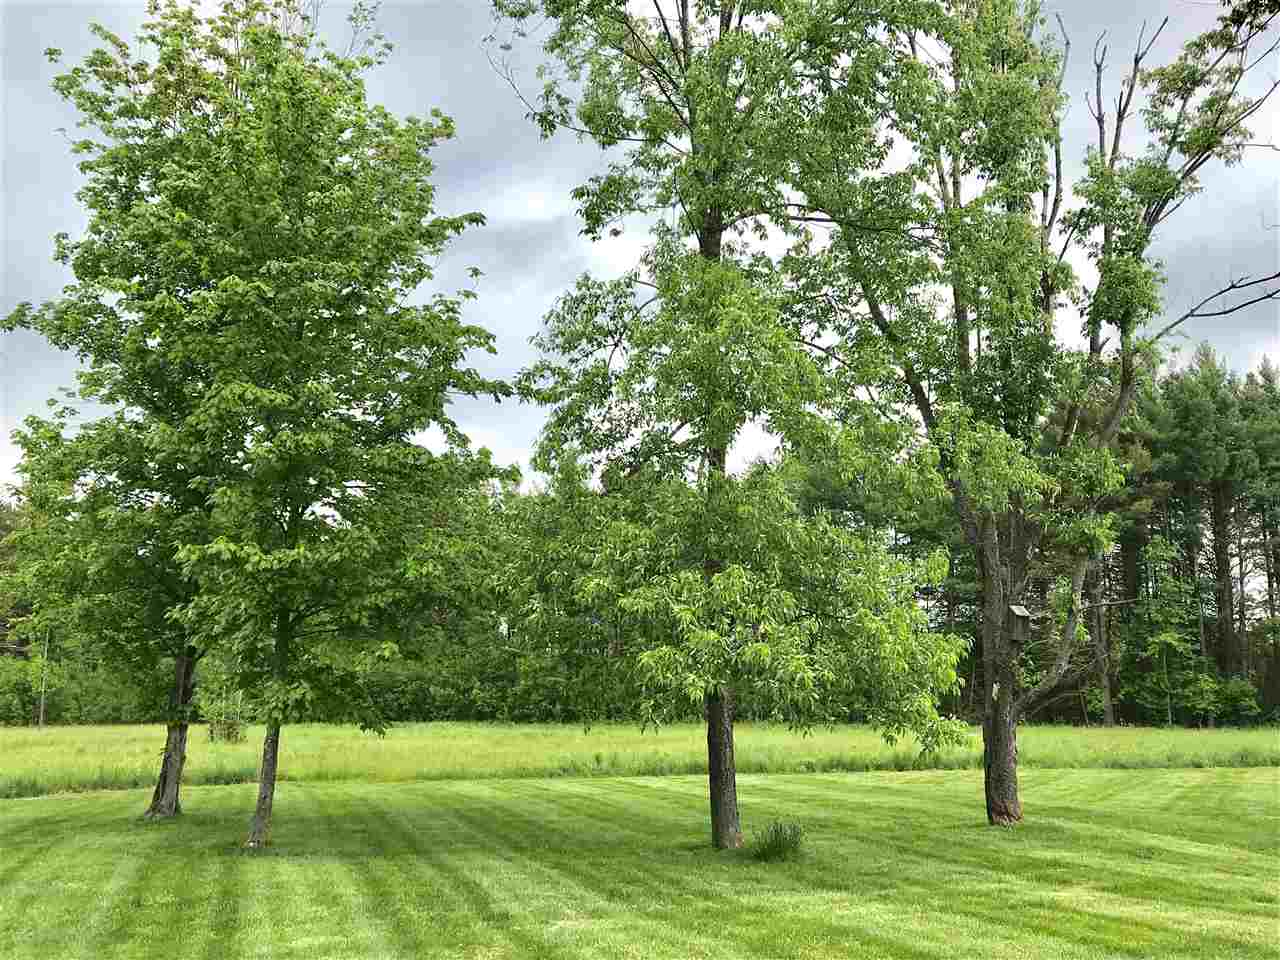 Lot of open space with mature trees 12031578